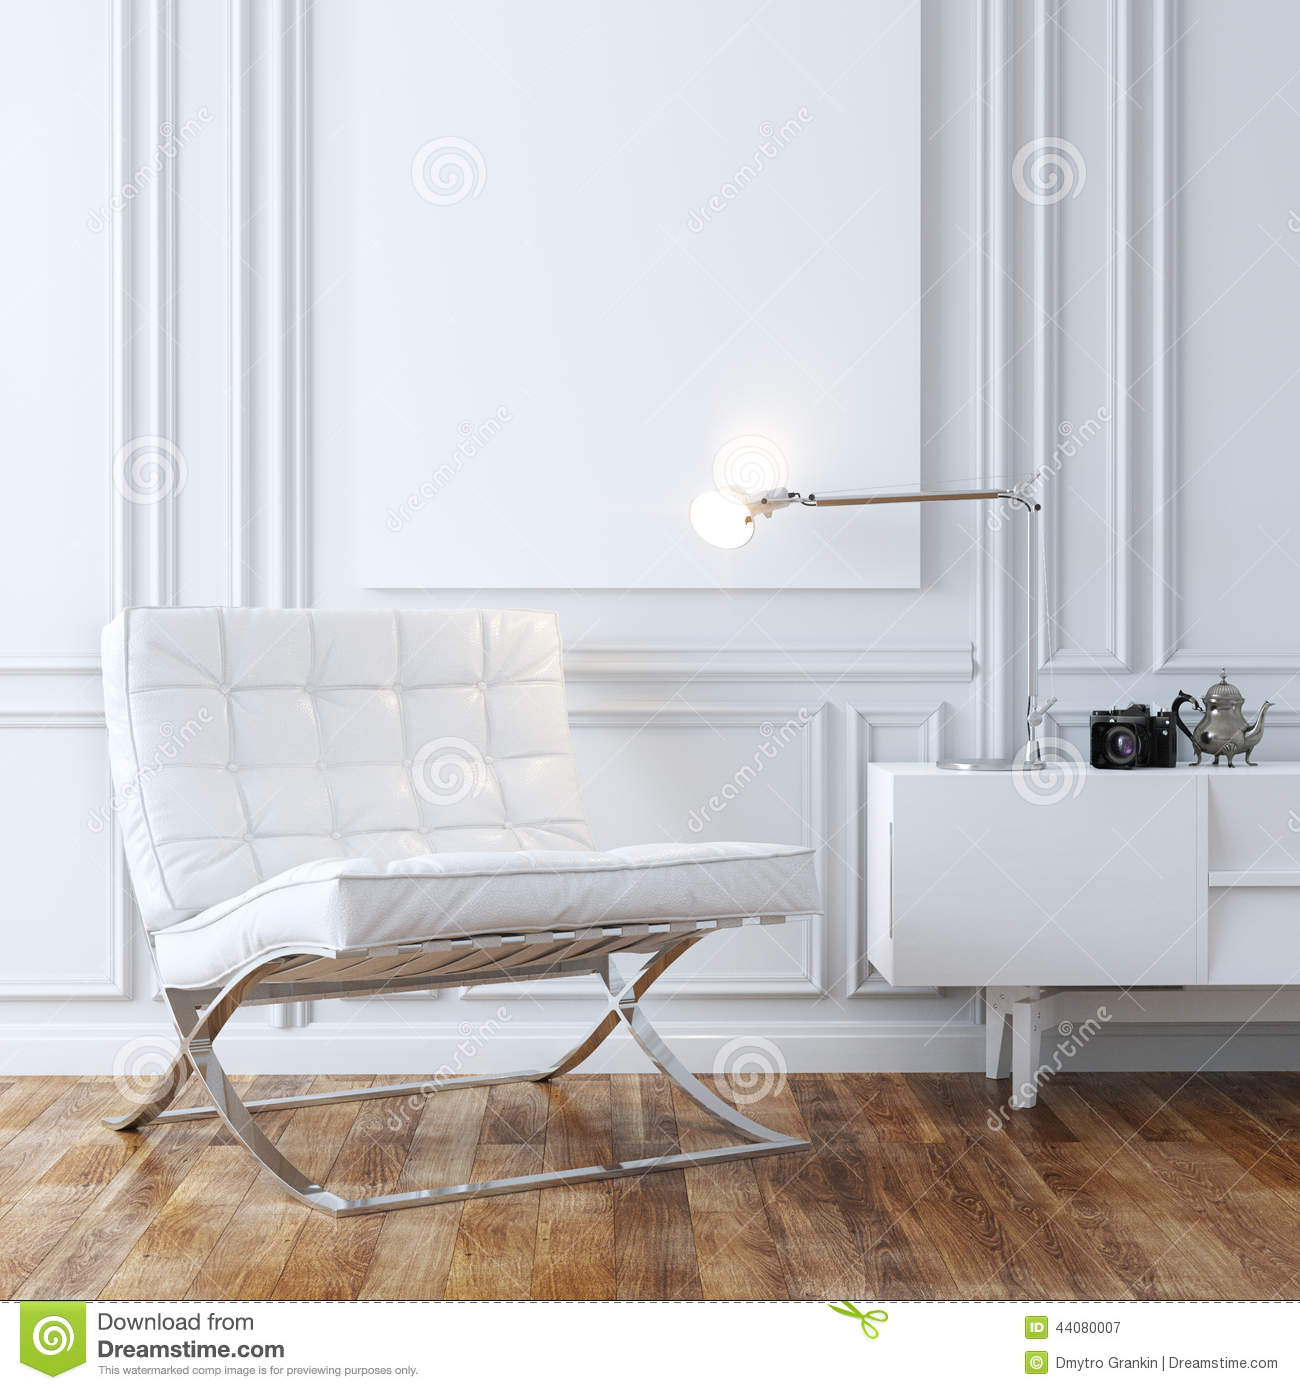 stylish white leather armchair in classic interior design stockstylish white leather armchair in classic interior design